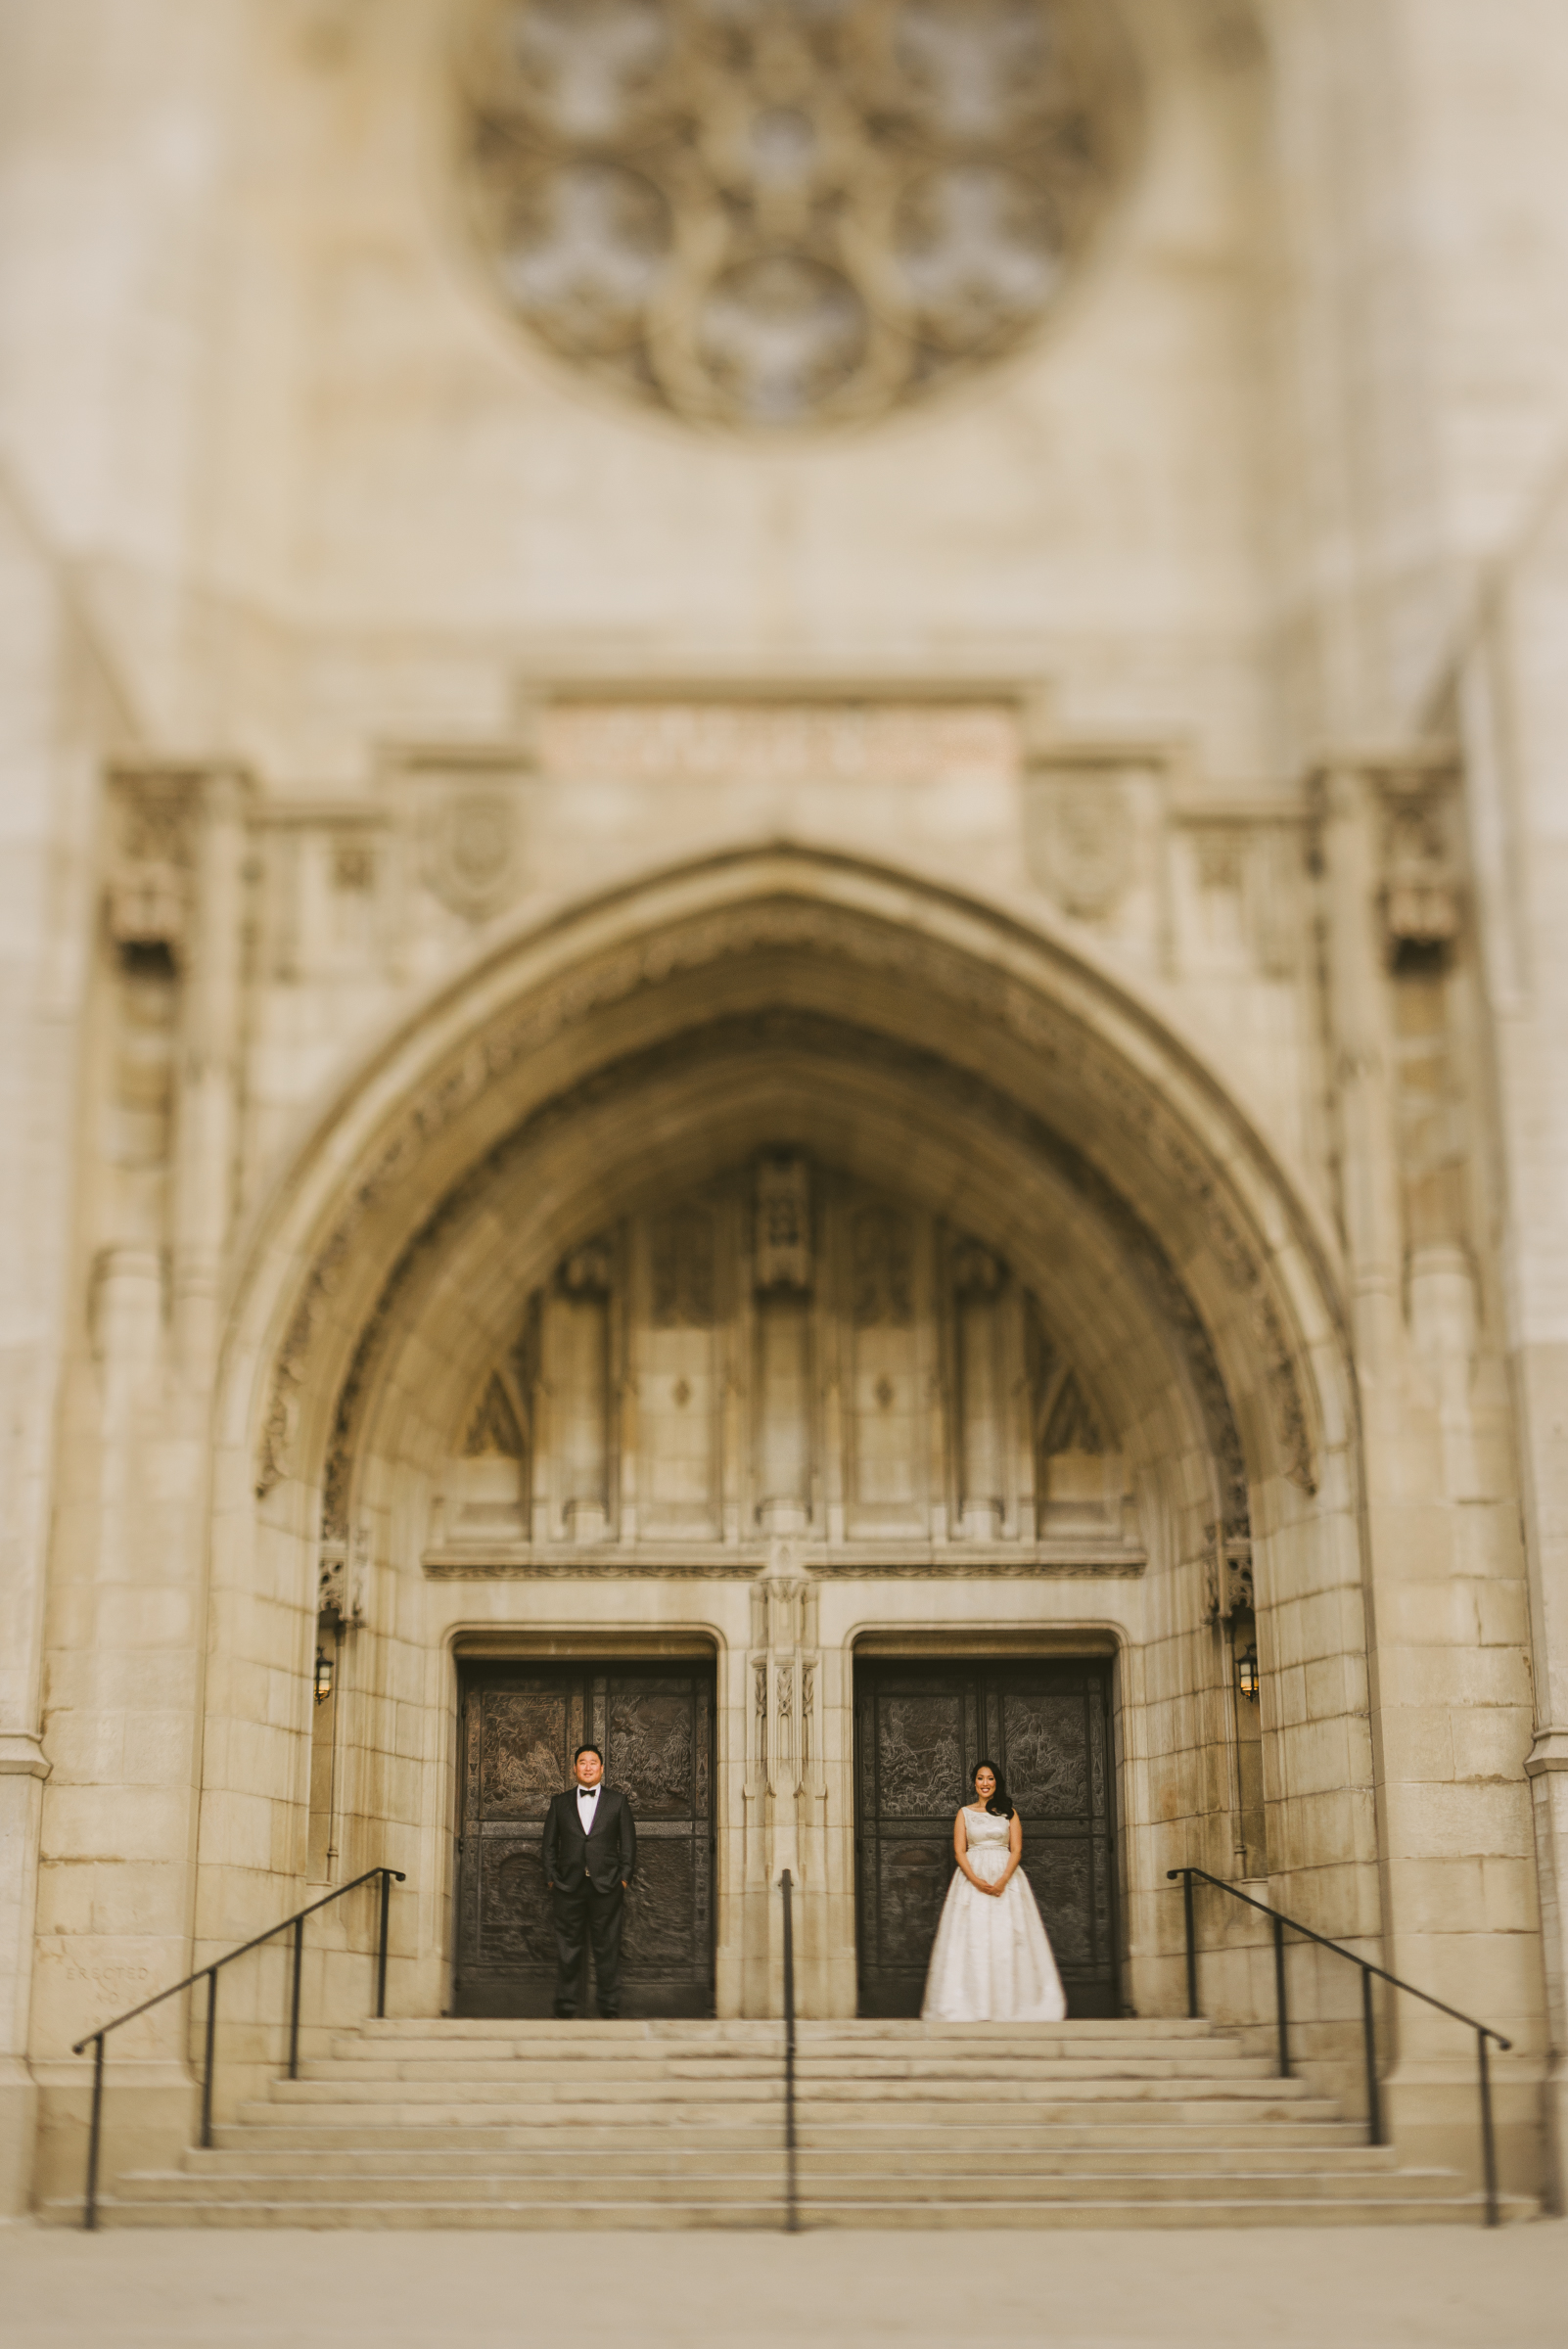 ©Isaiah + Taylor Photography - David + Grace - Wedding - 20170115 07817.jpg